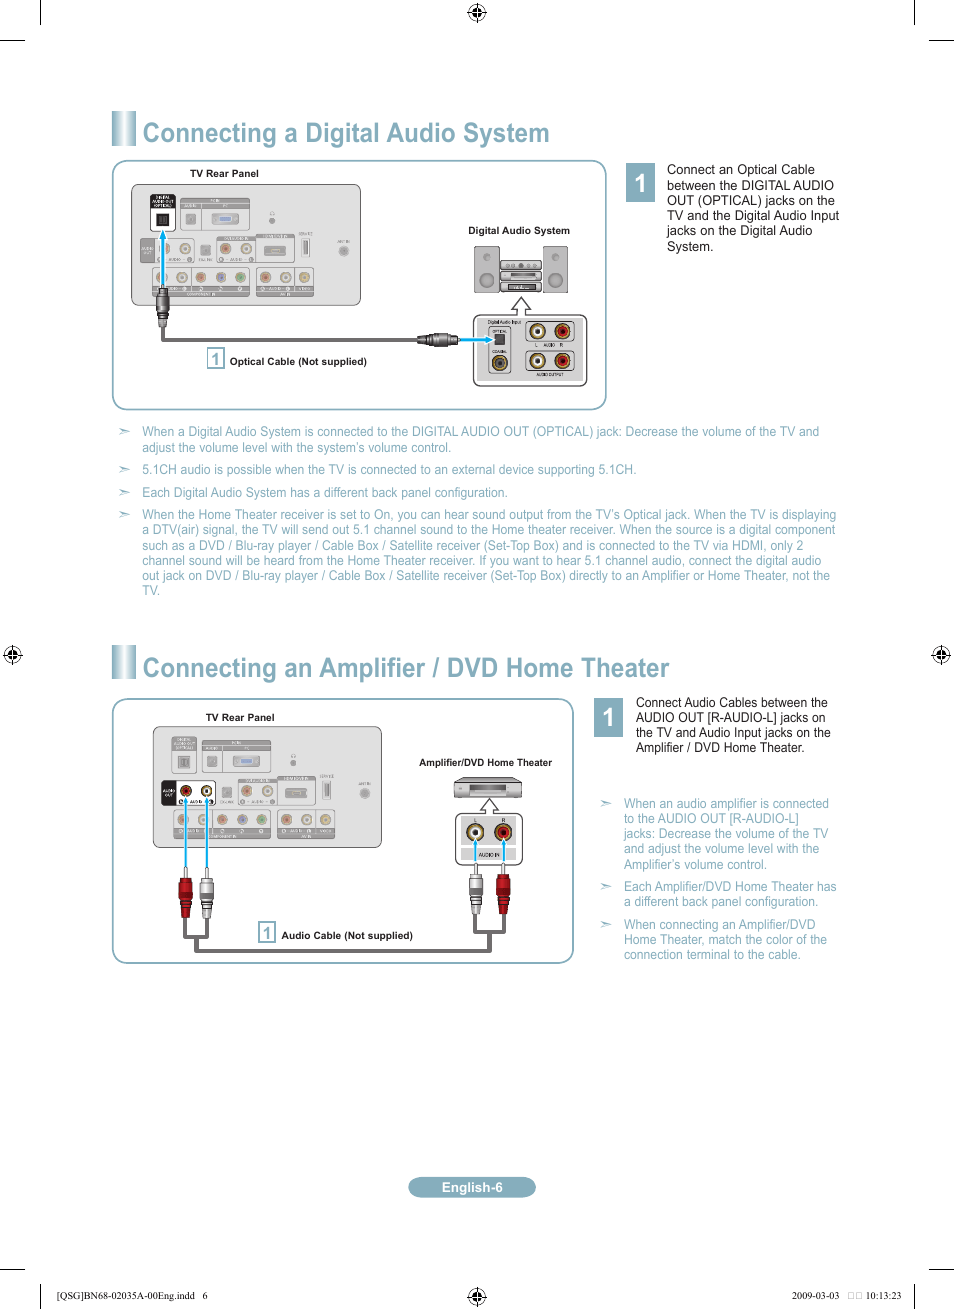 Connecting a digital audio system, Connecting an amplifier